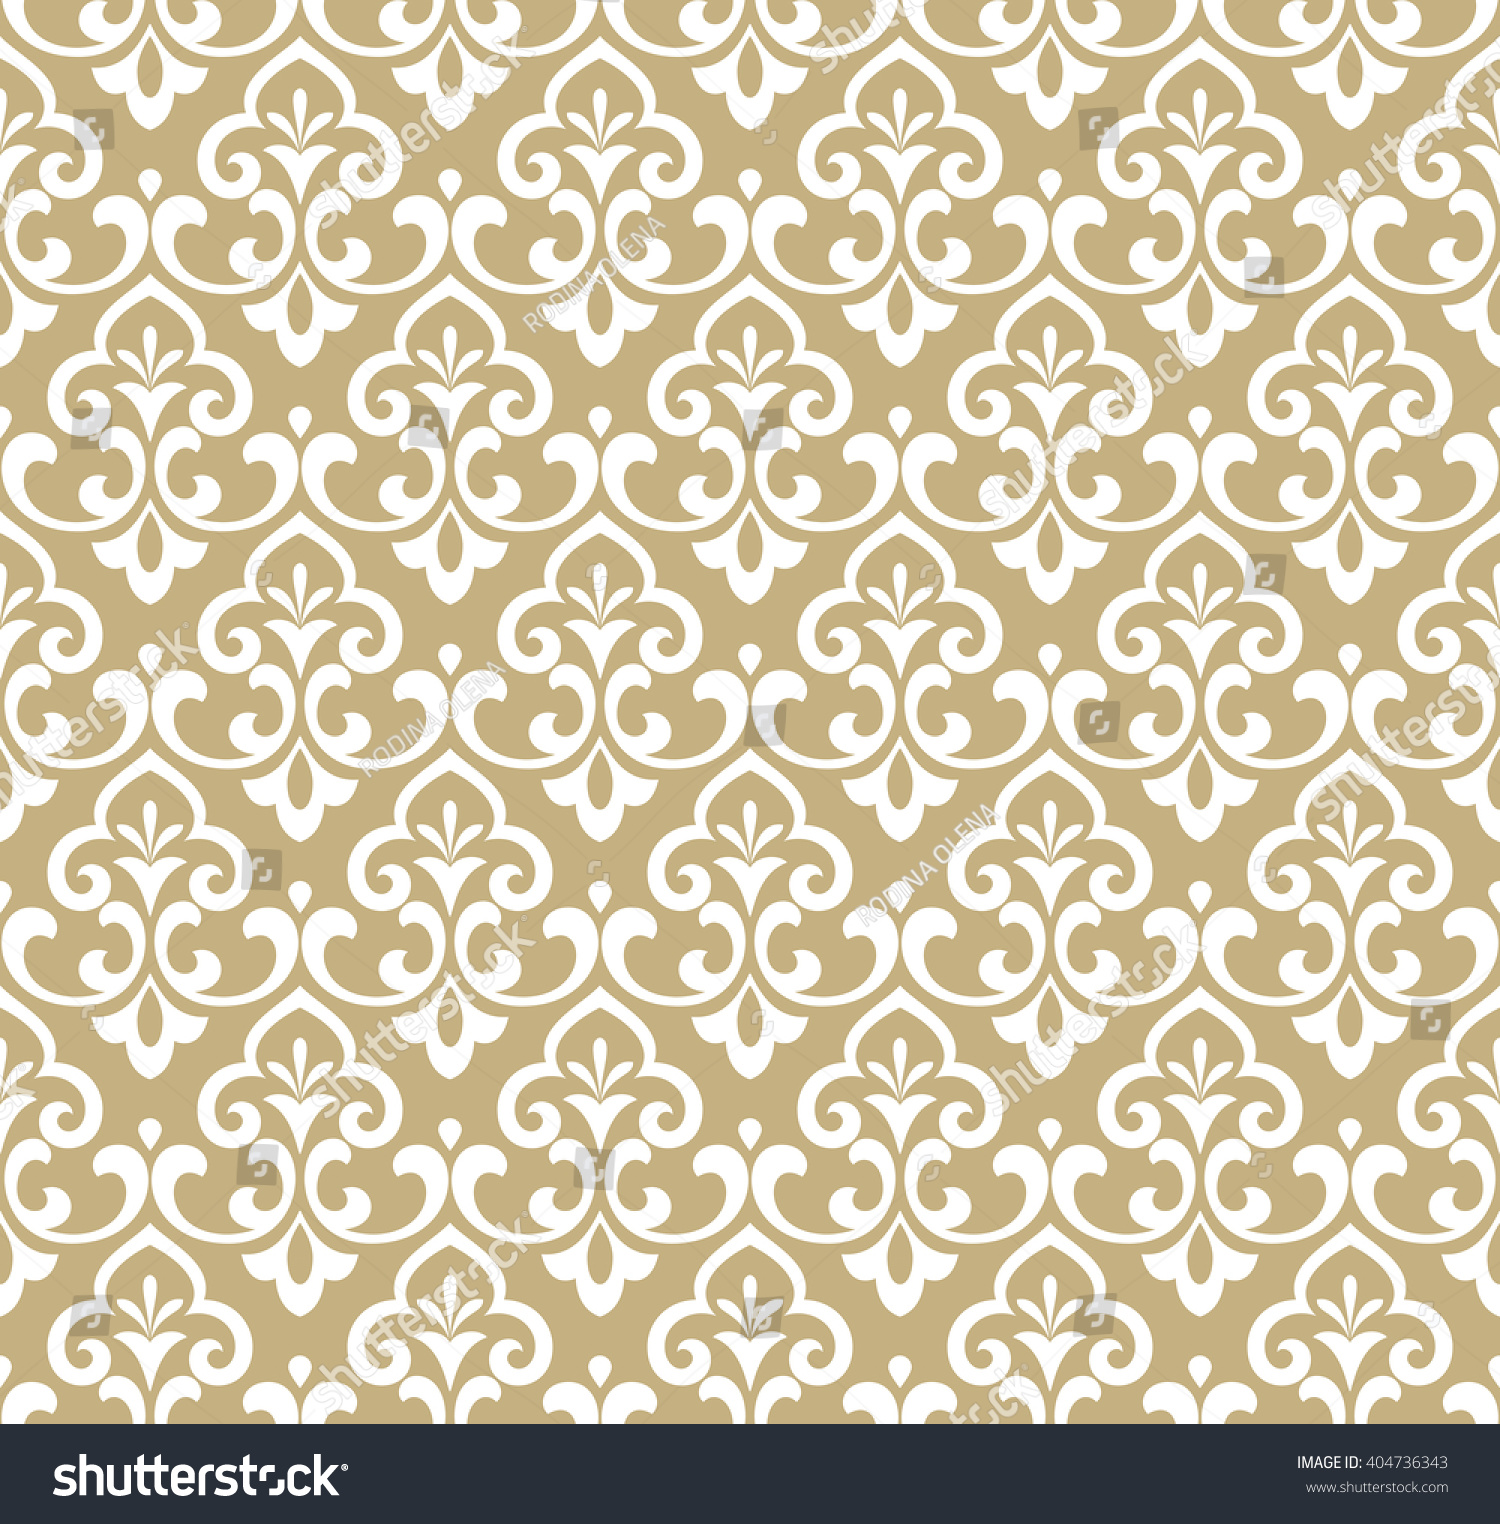 white and gold floral wallpaper - photo #44